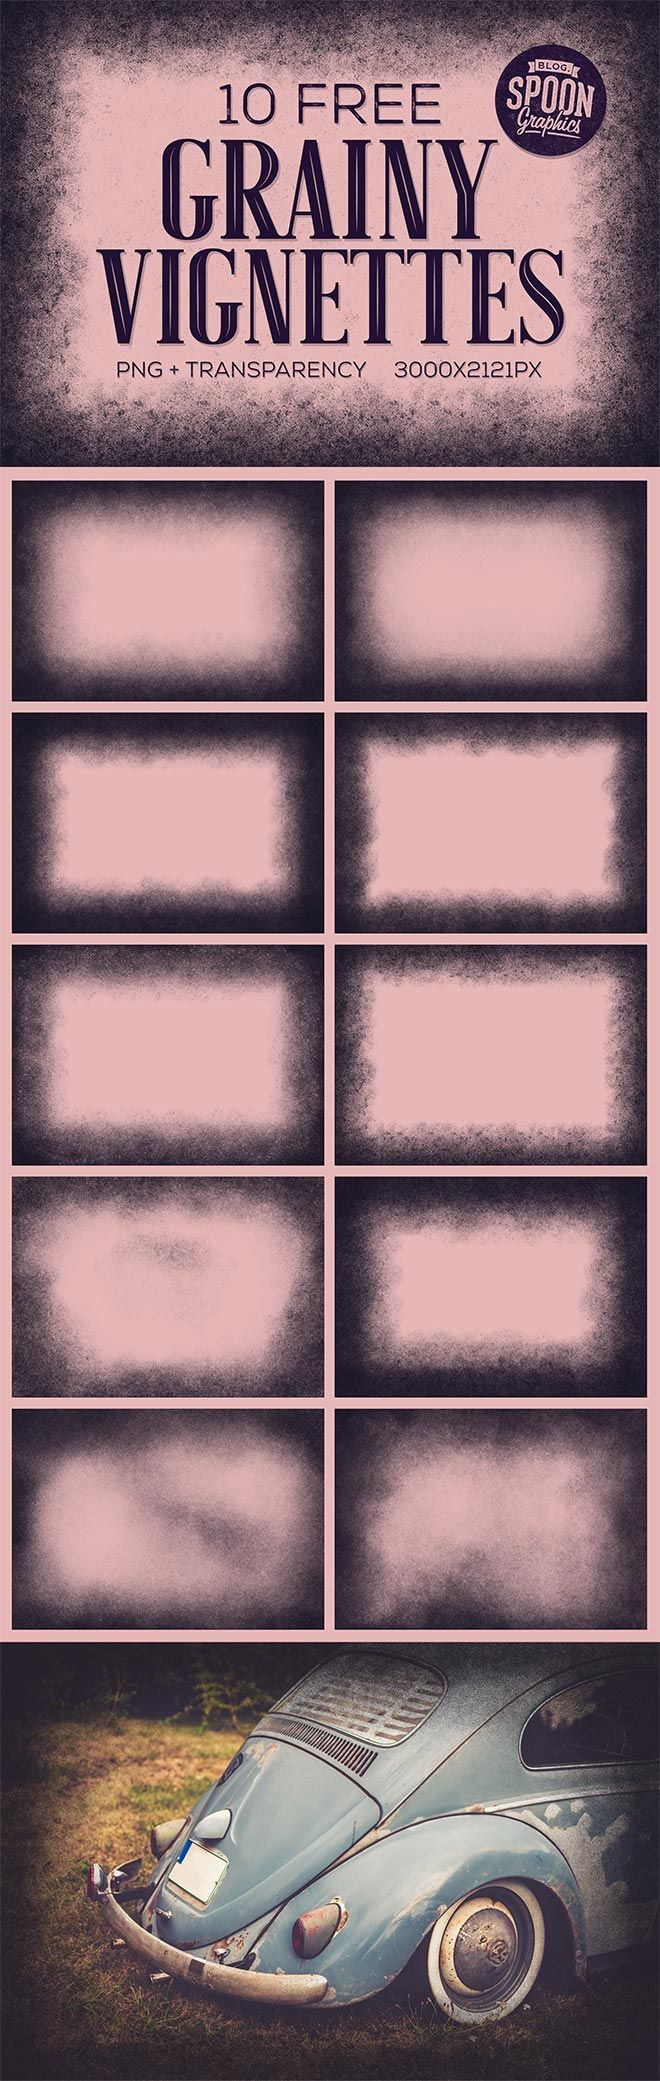 Download my new collection of grainy vignettes to add gritty effects to your artwork. These 10 free textures feature heavy speckling that gradually advances from the edges to produce a dirty vignette effect that helps you focus attention on design elements within the centre of the composition. Each image comes as a high resolution 3000x2121px …